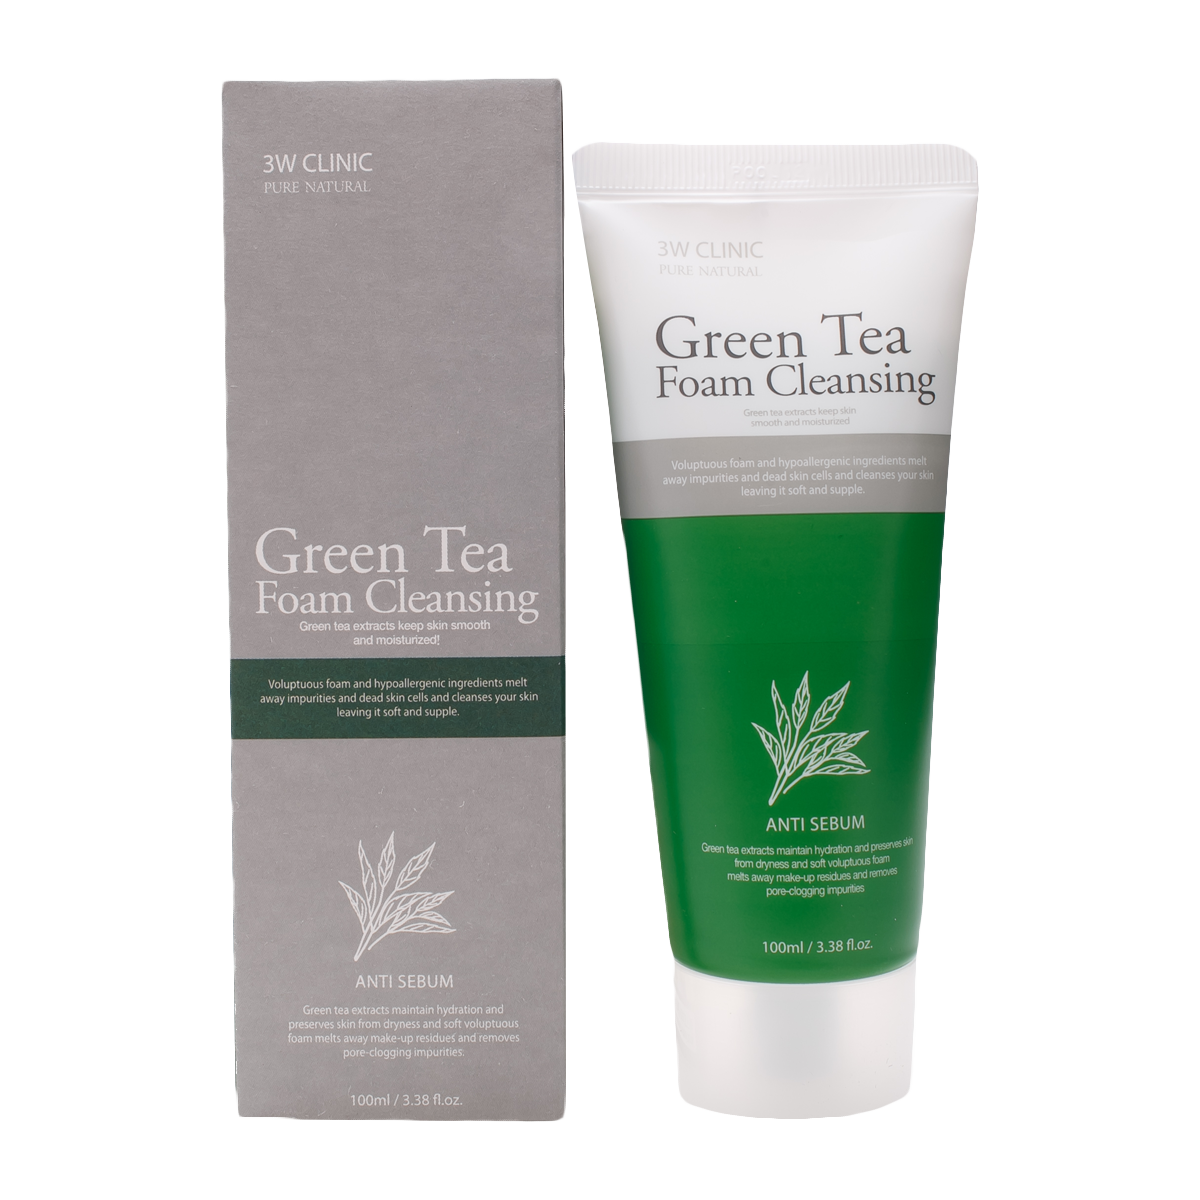 Очищение кожи Пенка для умывания 3W Clinic Green Tea Foam Cleansing, 100 мл import_files_a3_a3ef38275b1d11e980fb3408042974b1_254234bb5c6f11e980fb3408042974b1.png